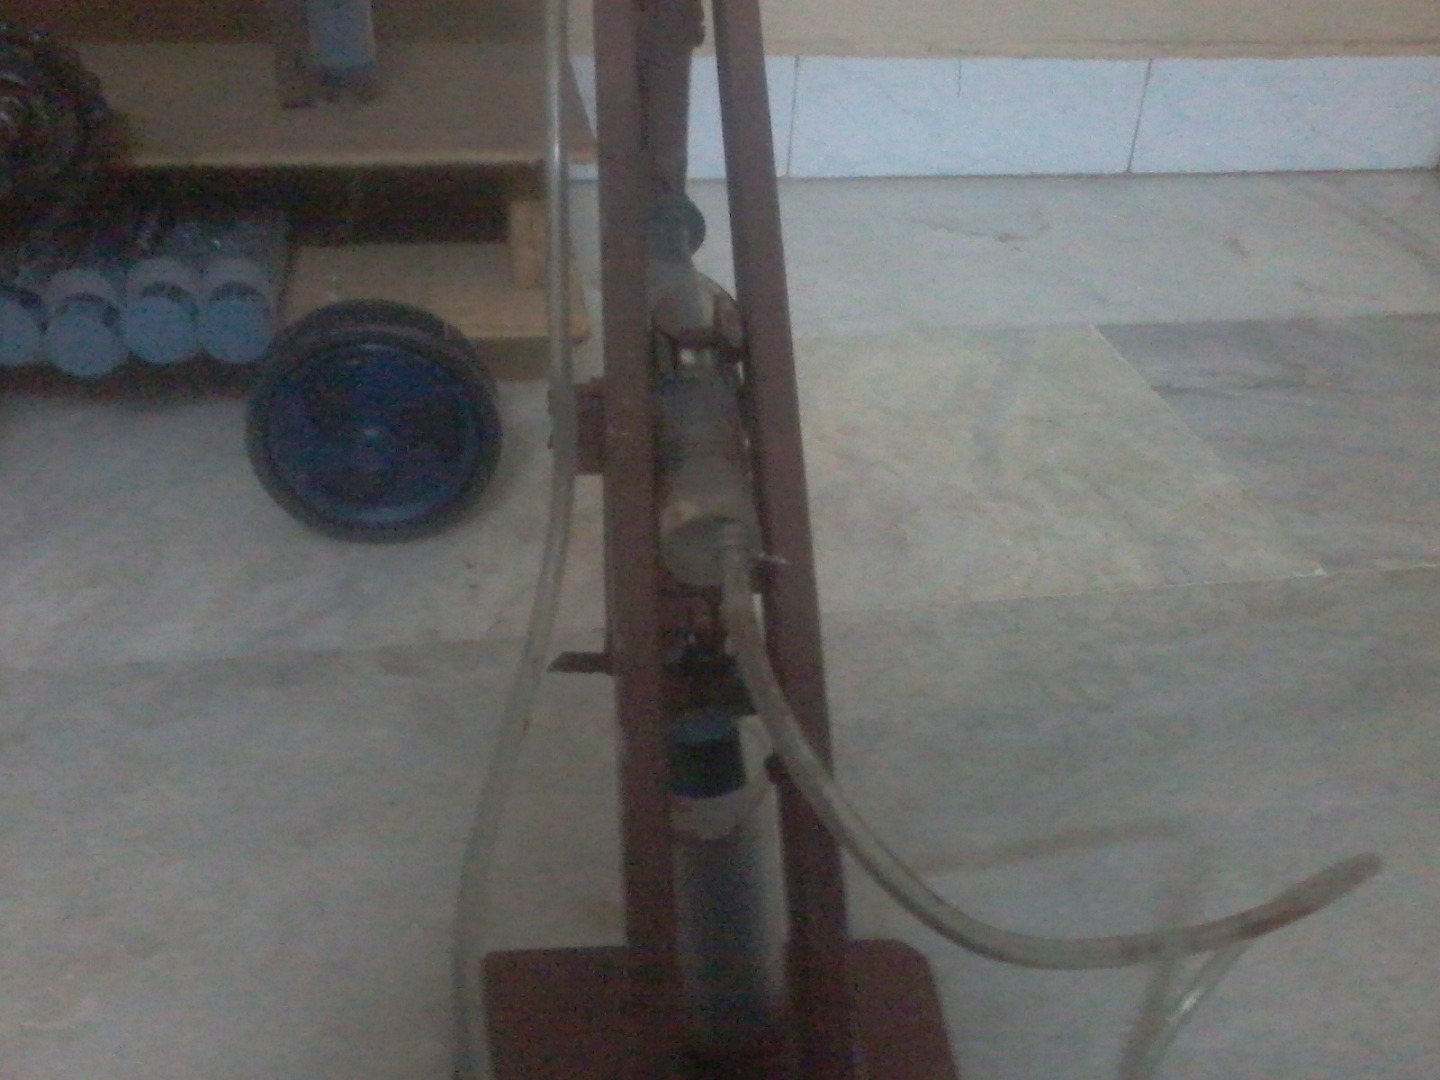 Picture of Hydraulic Load Lifter